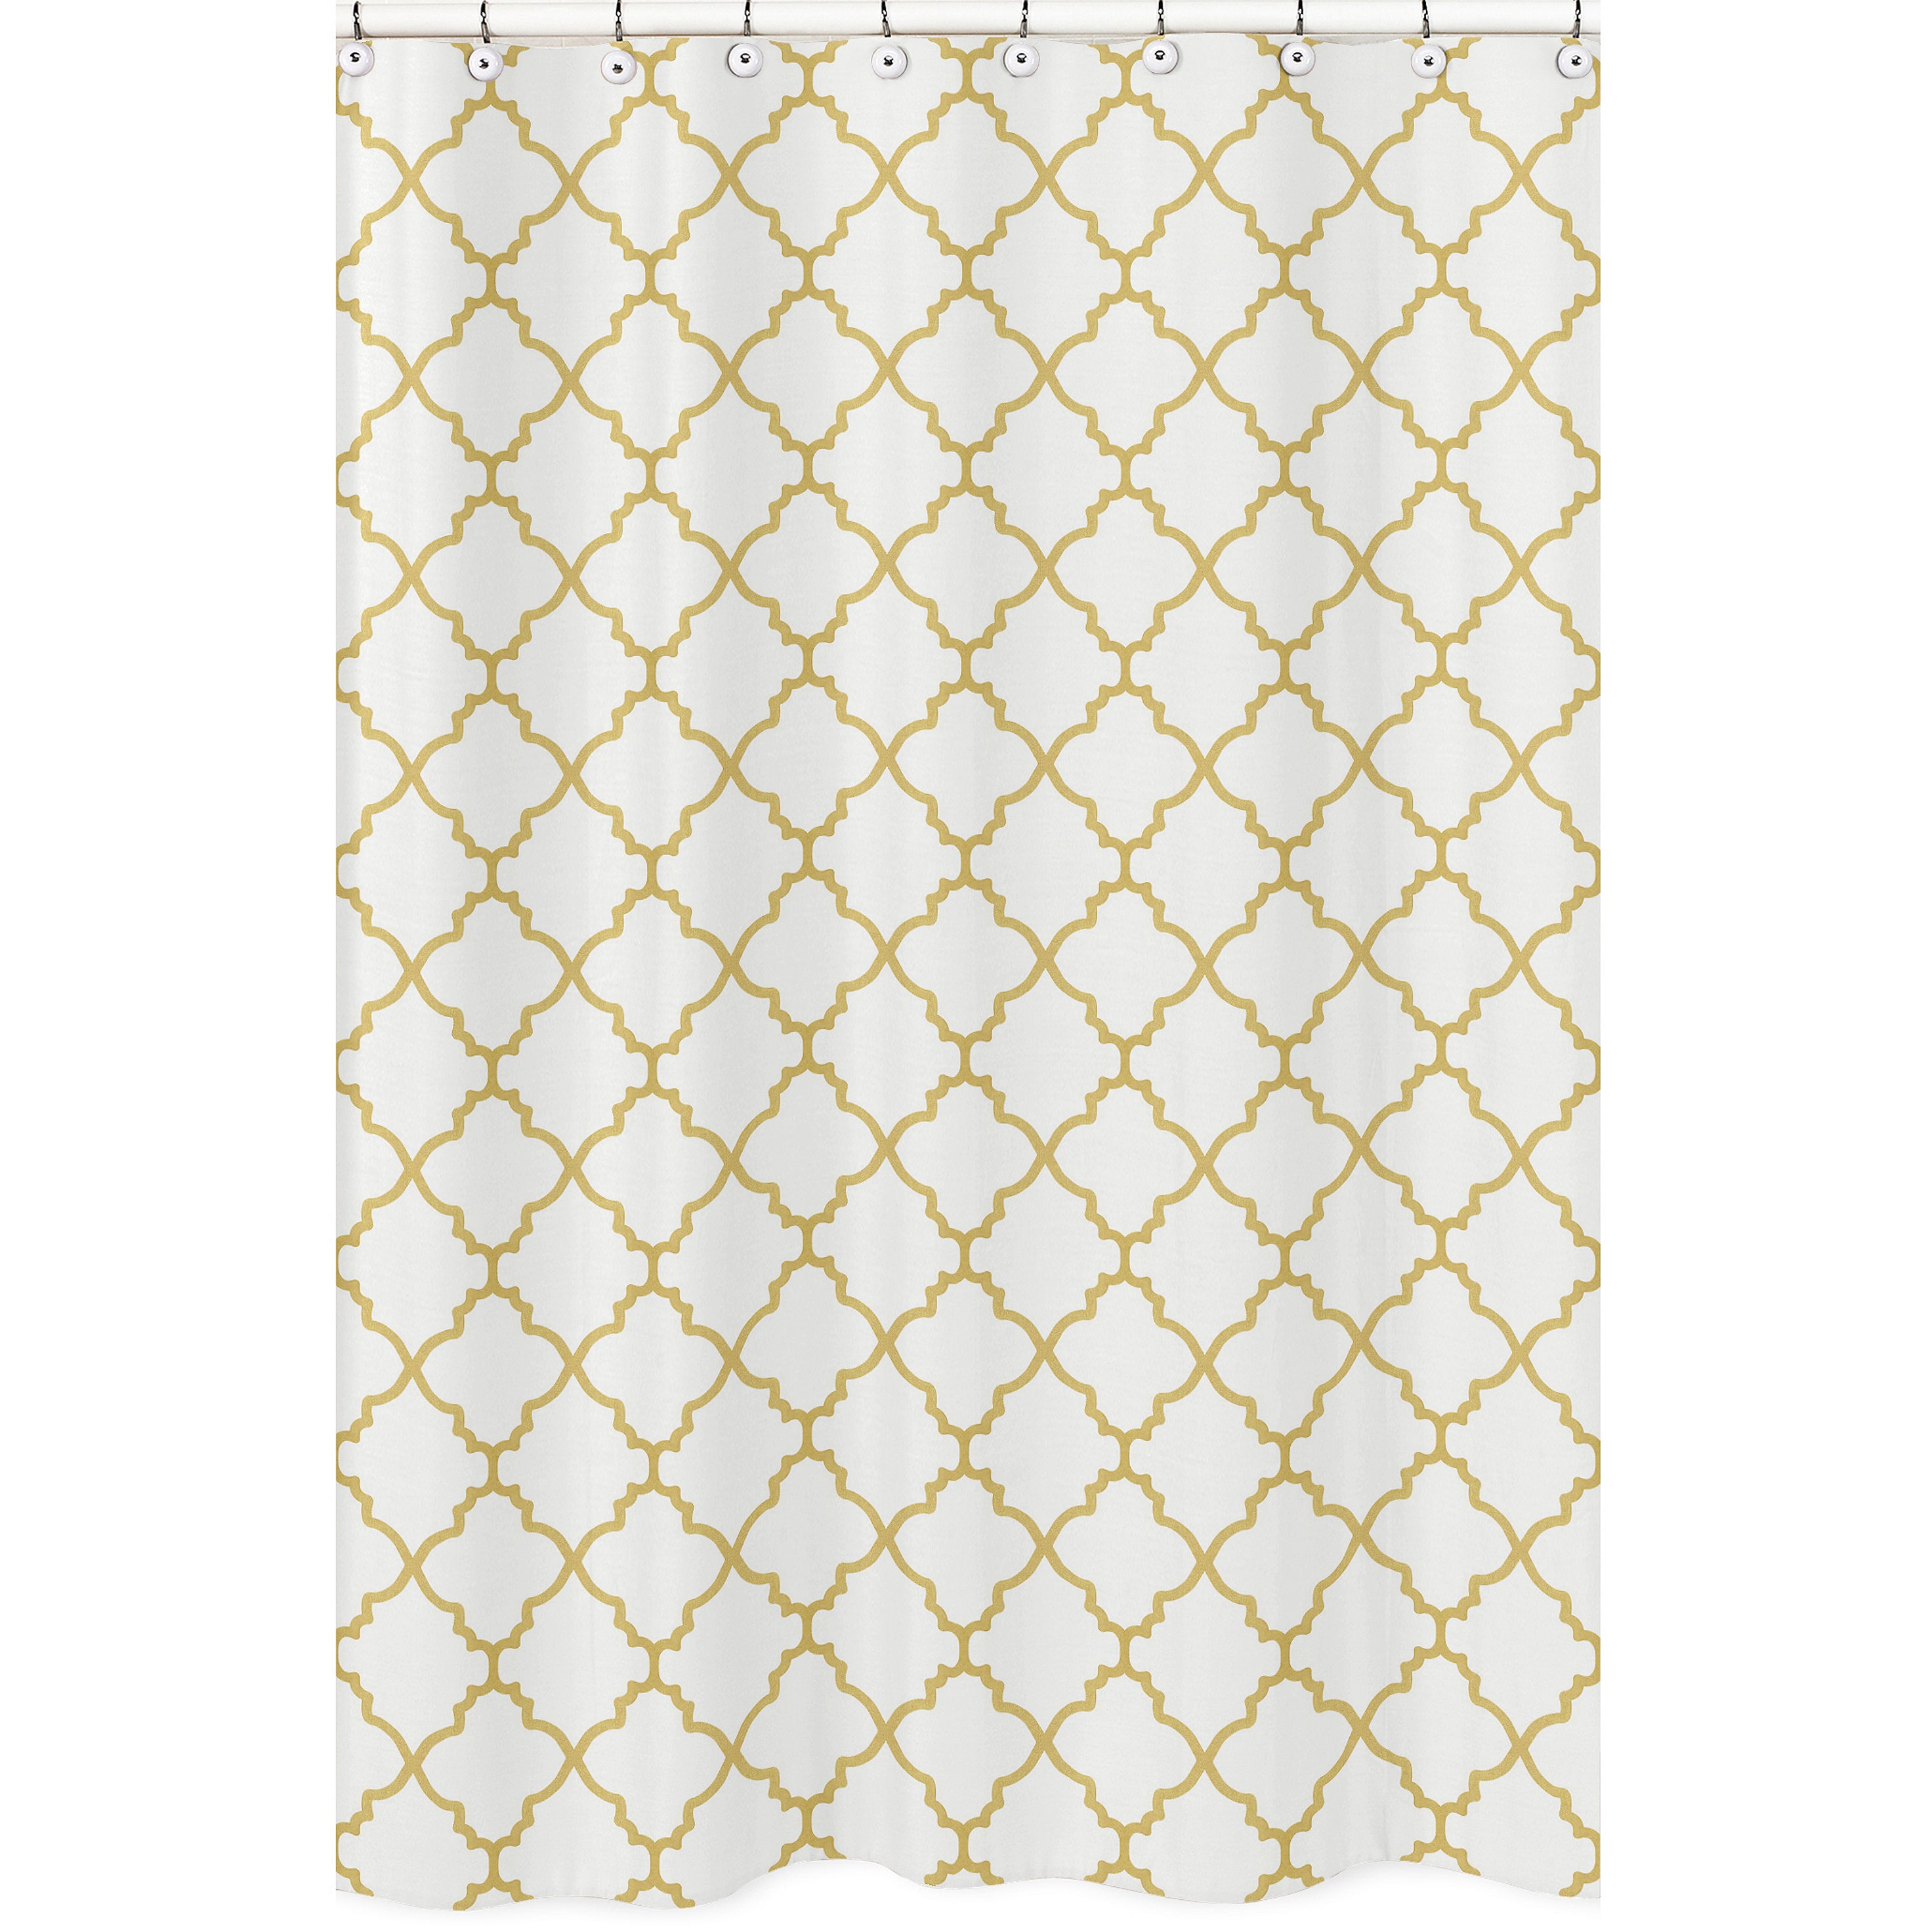 Shop Shower Curtain For The White And Gold Trellis Collection By Sweet Jojo Designs